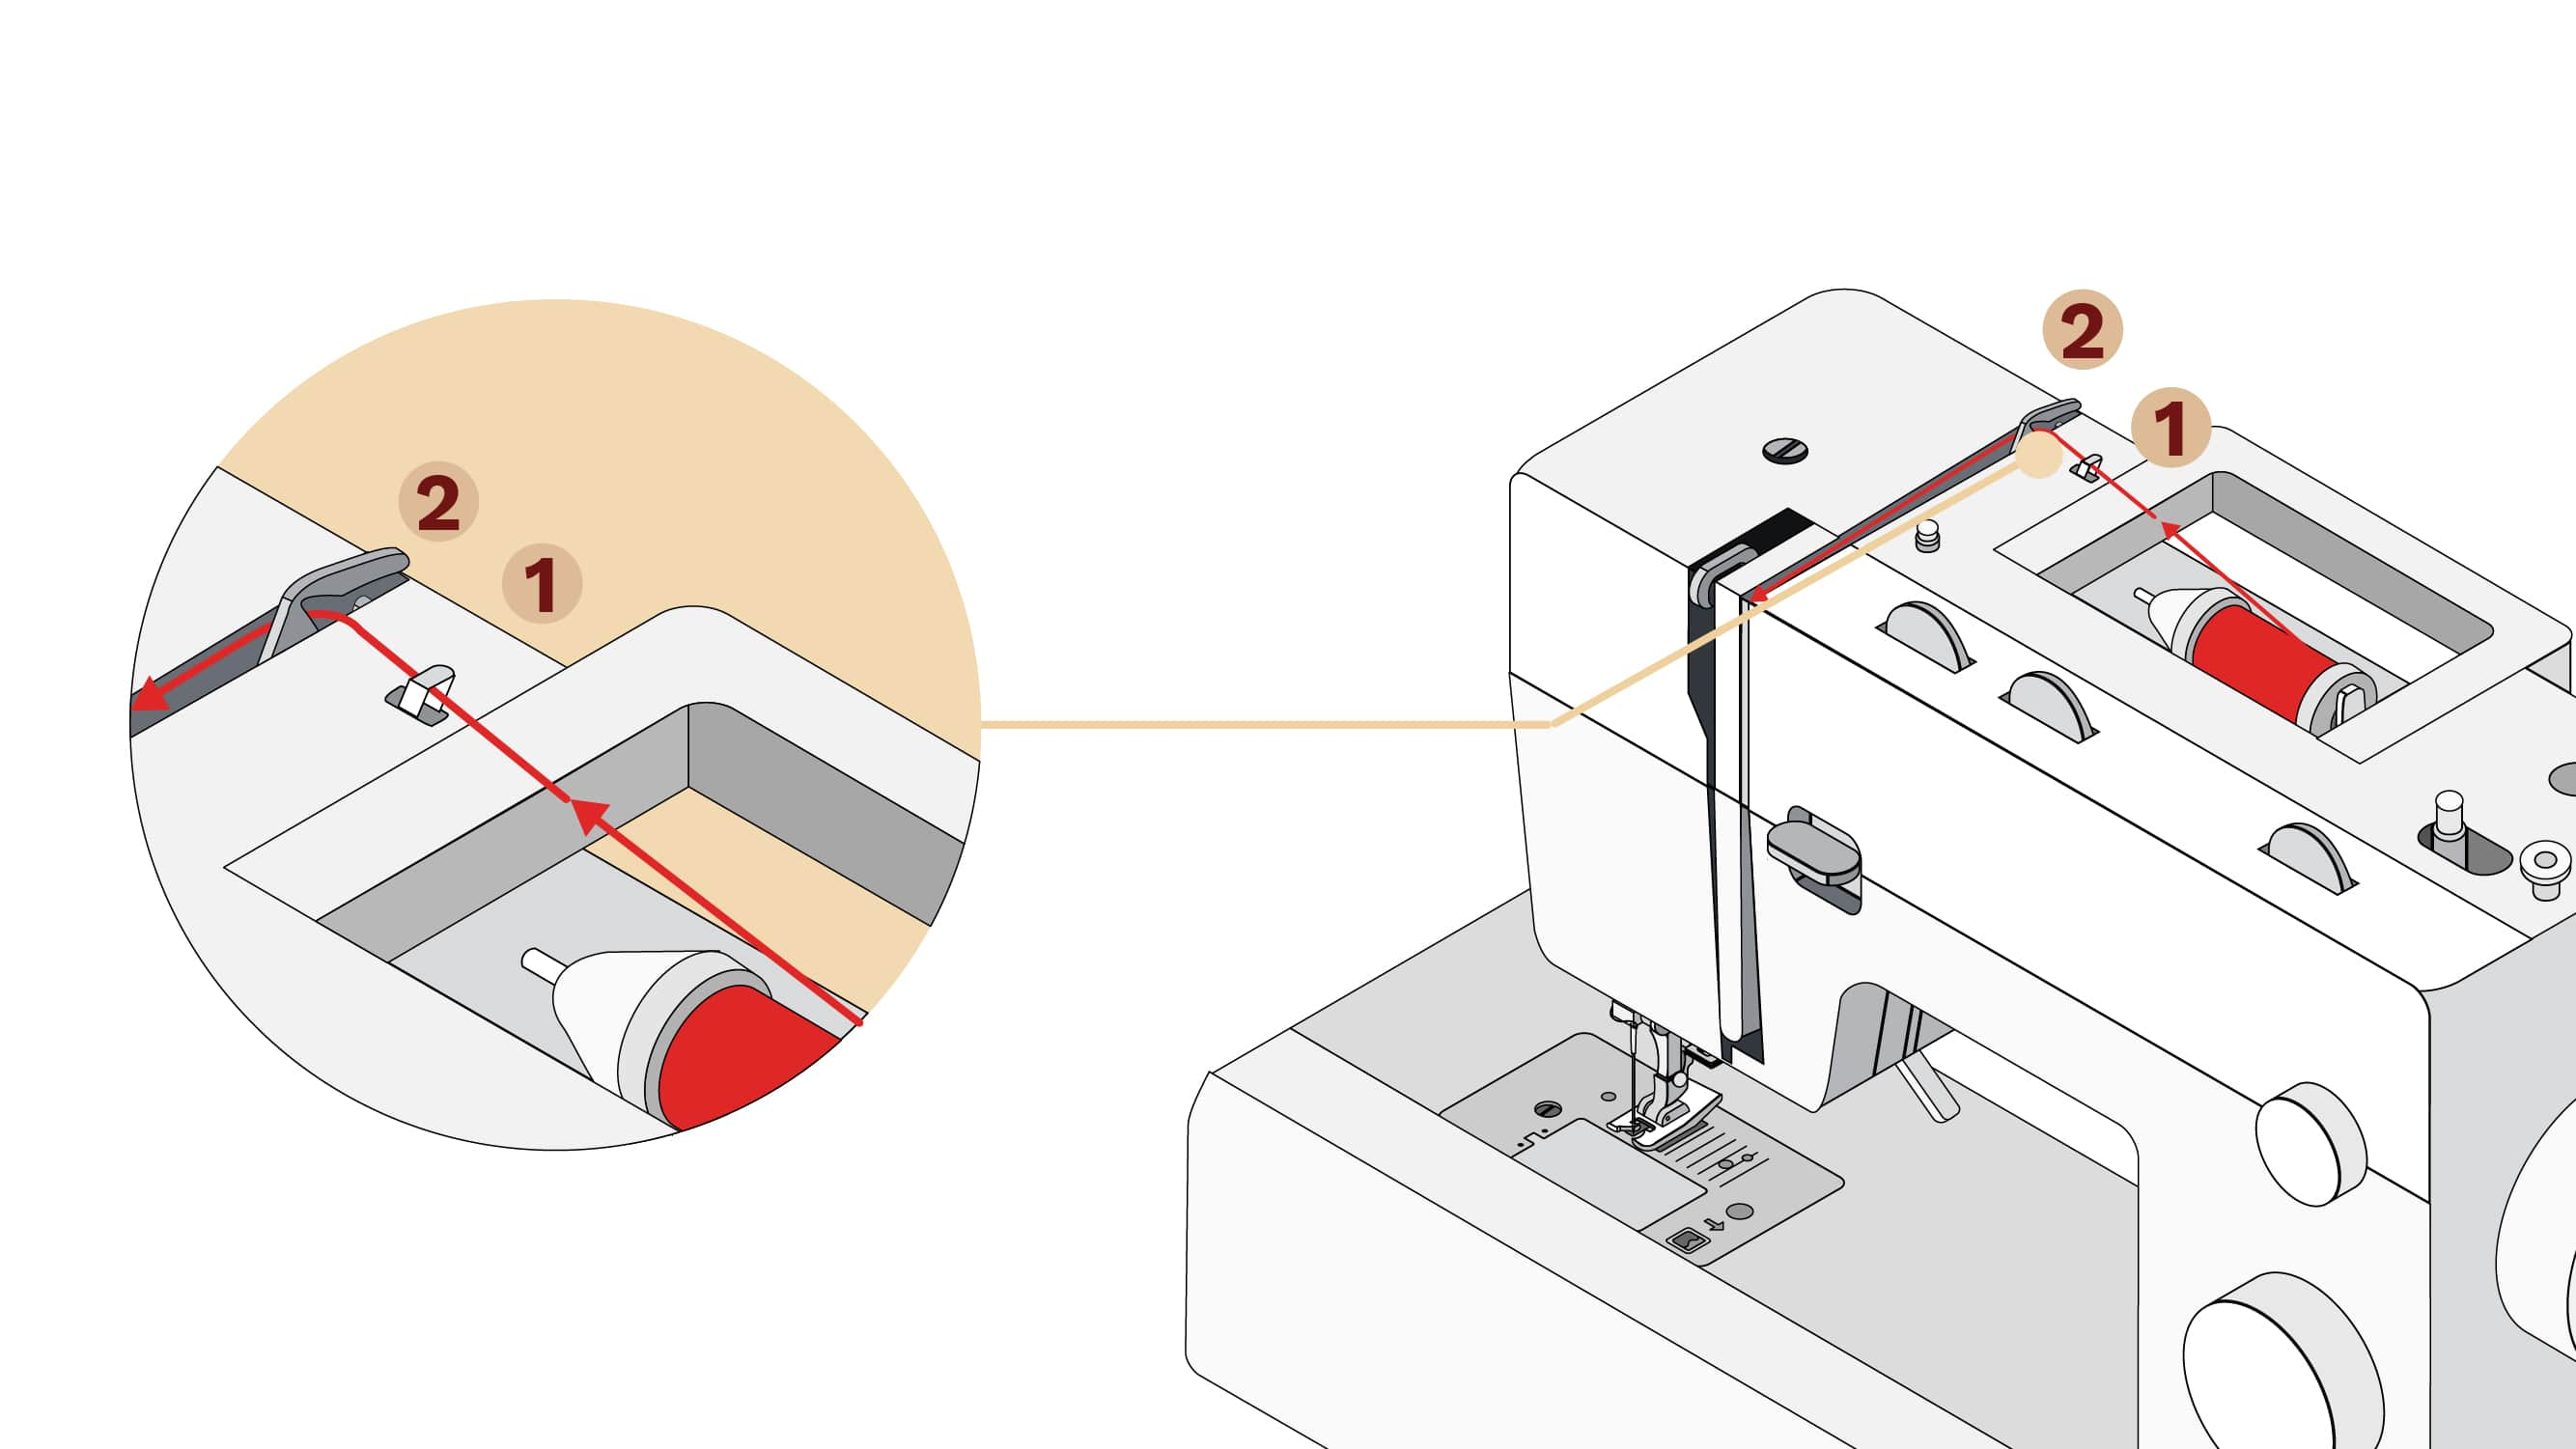 Upper thread passing through thread guide and take-up lever | How to thread the machine | Sewing tutorial © Singer® Hong Kong